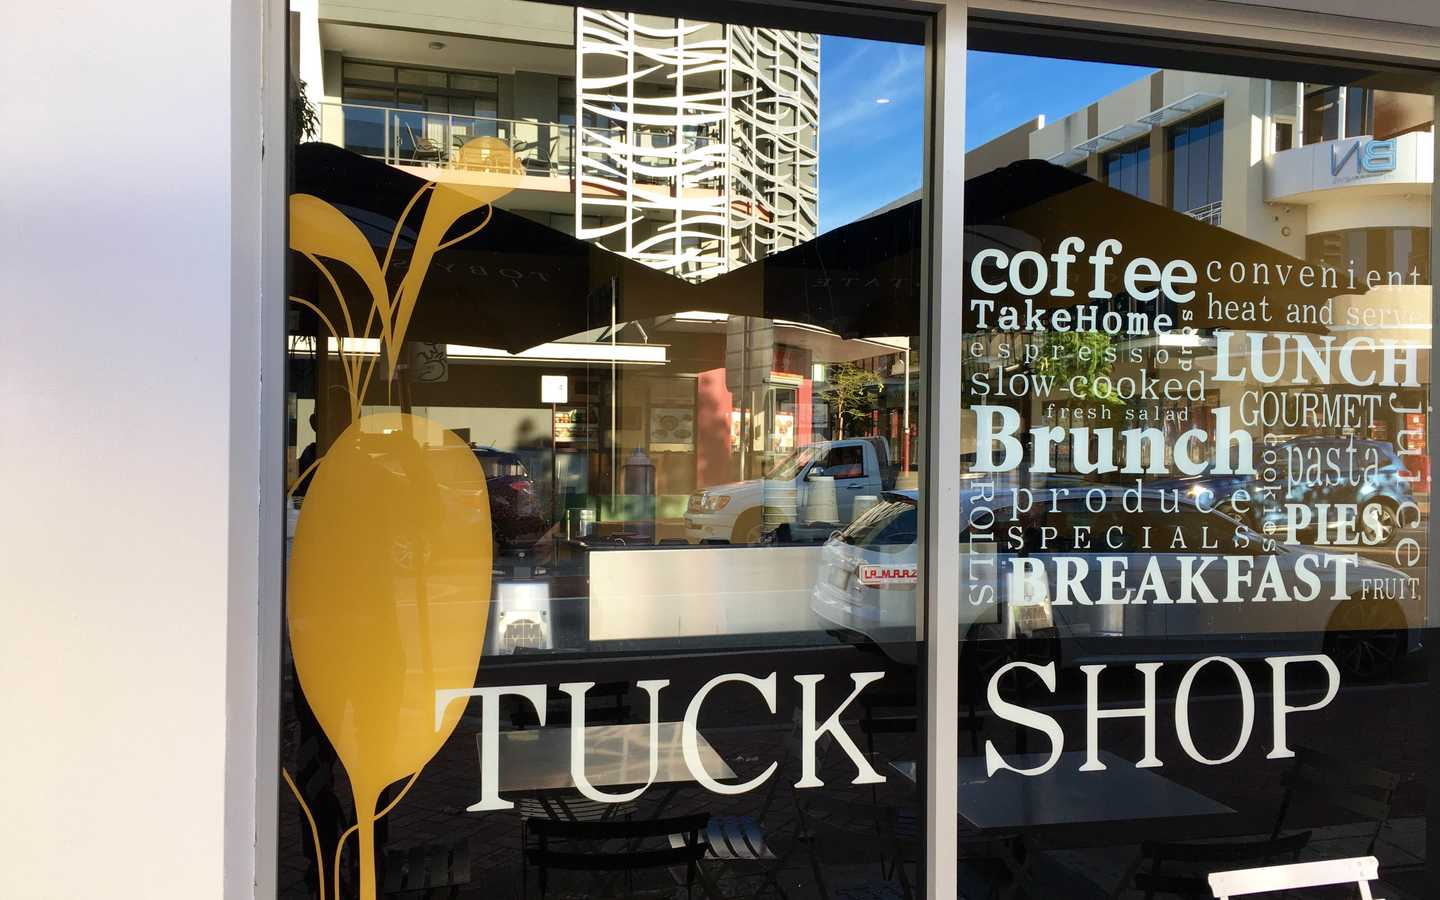 Tuck In at Northbridge hot spot Tuckshop.